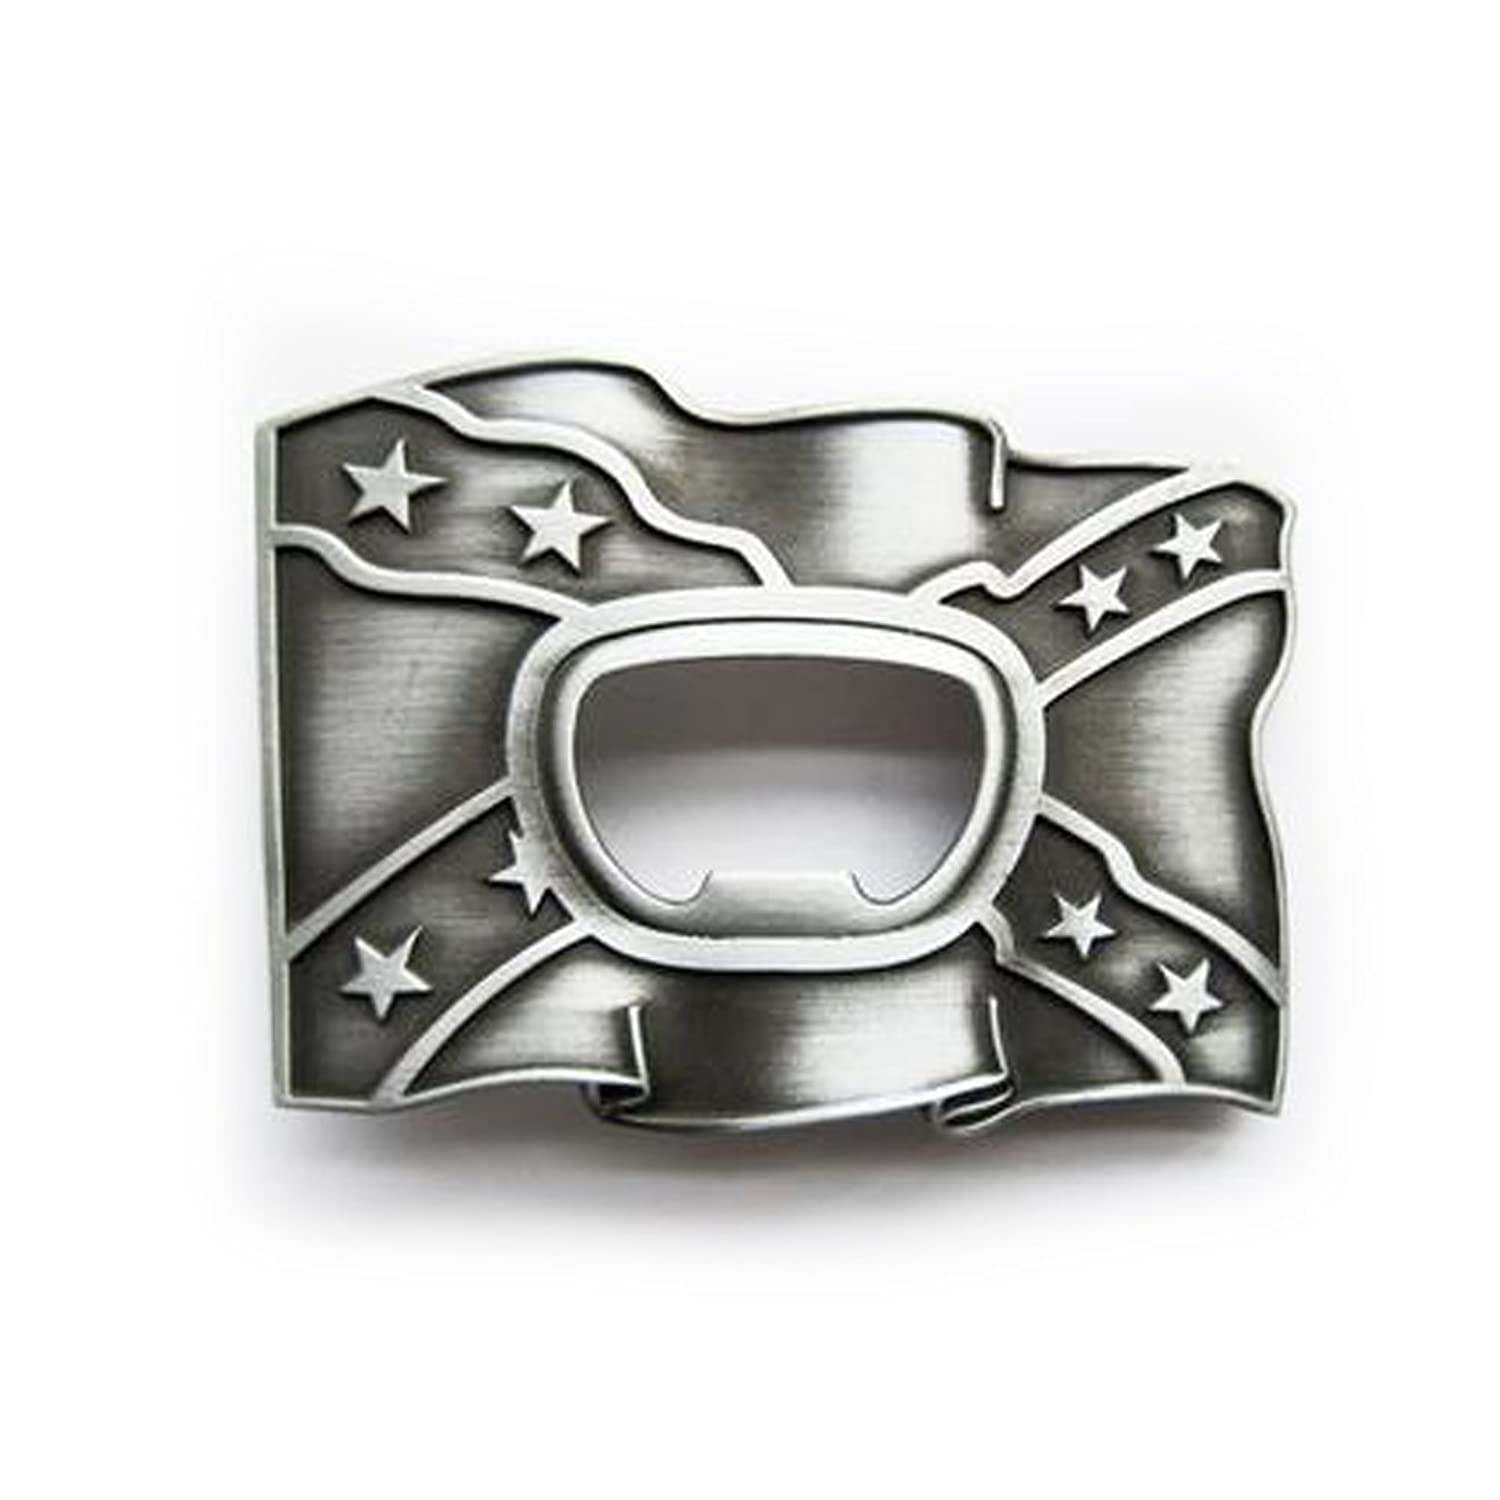 eeddoo® Gürtelschnalle - Flaschenöffner Flagge (Buckle für Wechselgürtel für Damen und Herren | Belt Frauen Männer Oldschool Rockabilly Metall Gothic Wave Rock Biker Western Trucker Casino Skull)